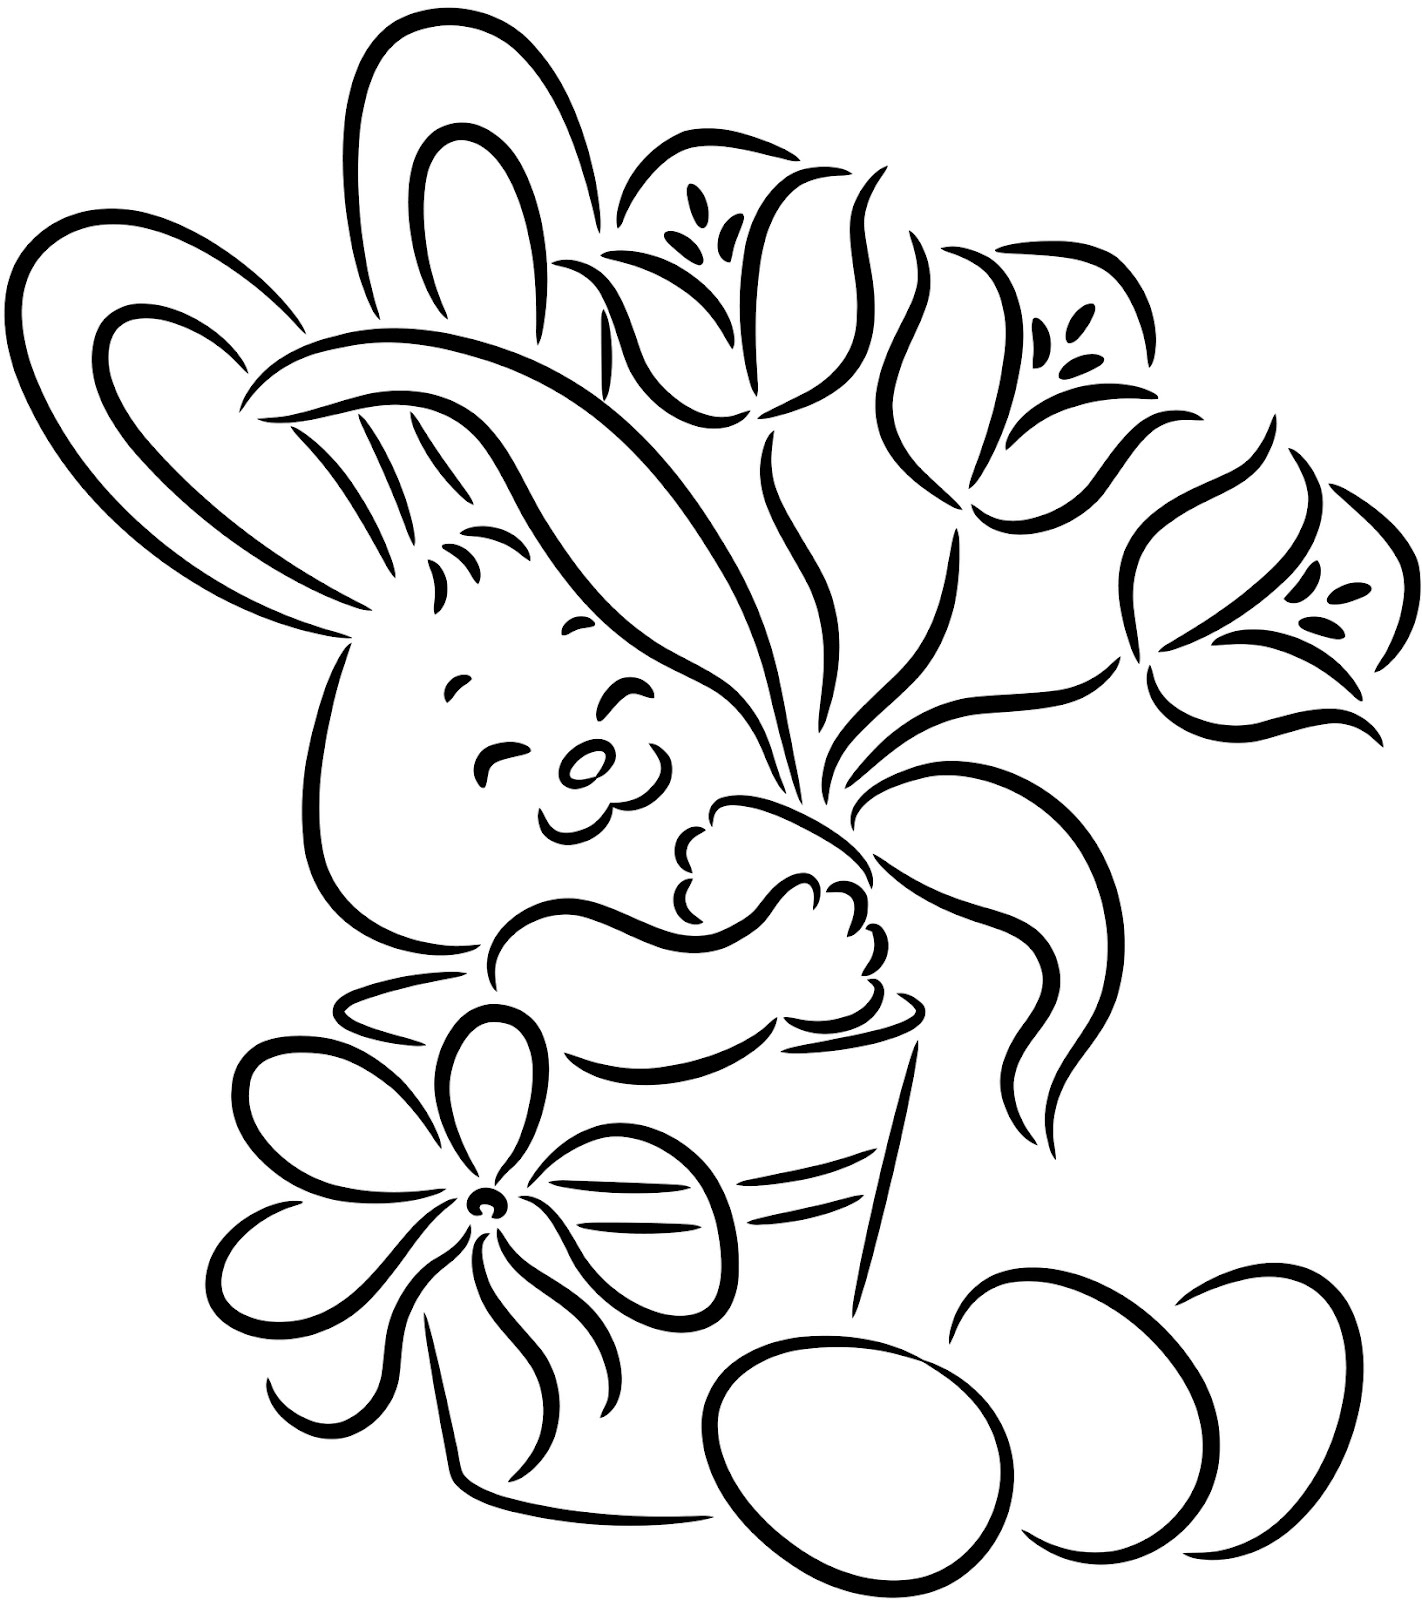 bunny coloring pages free coloring page bunny berry coloring free bunny pages